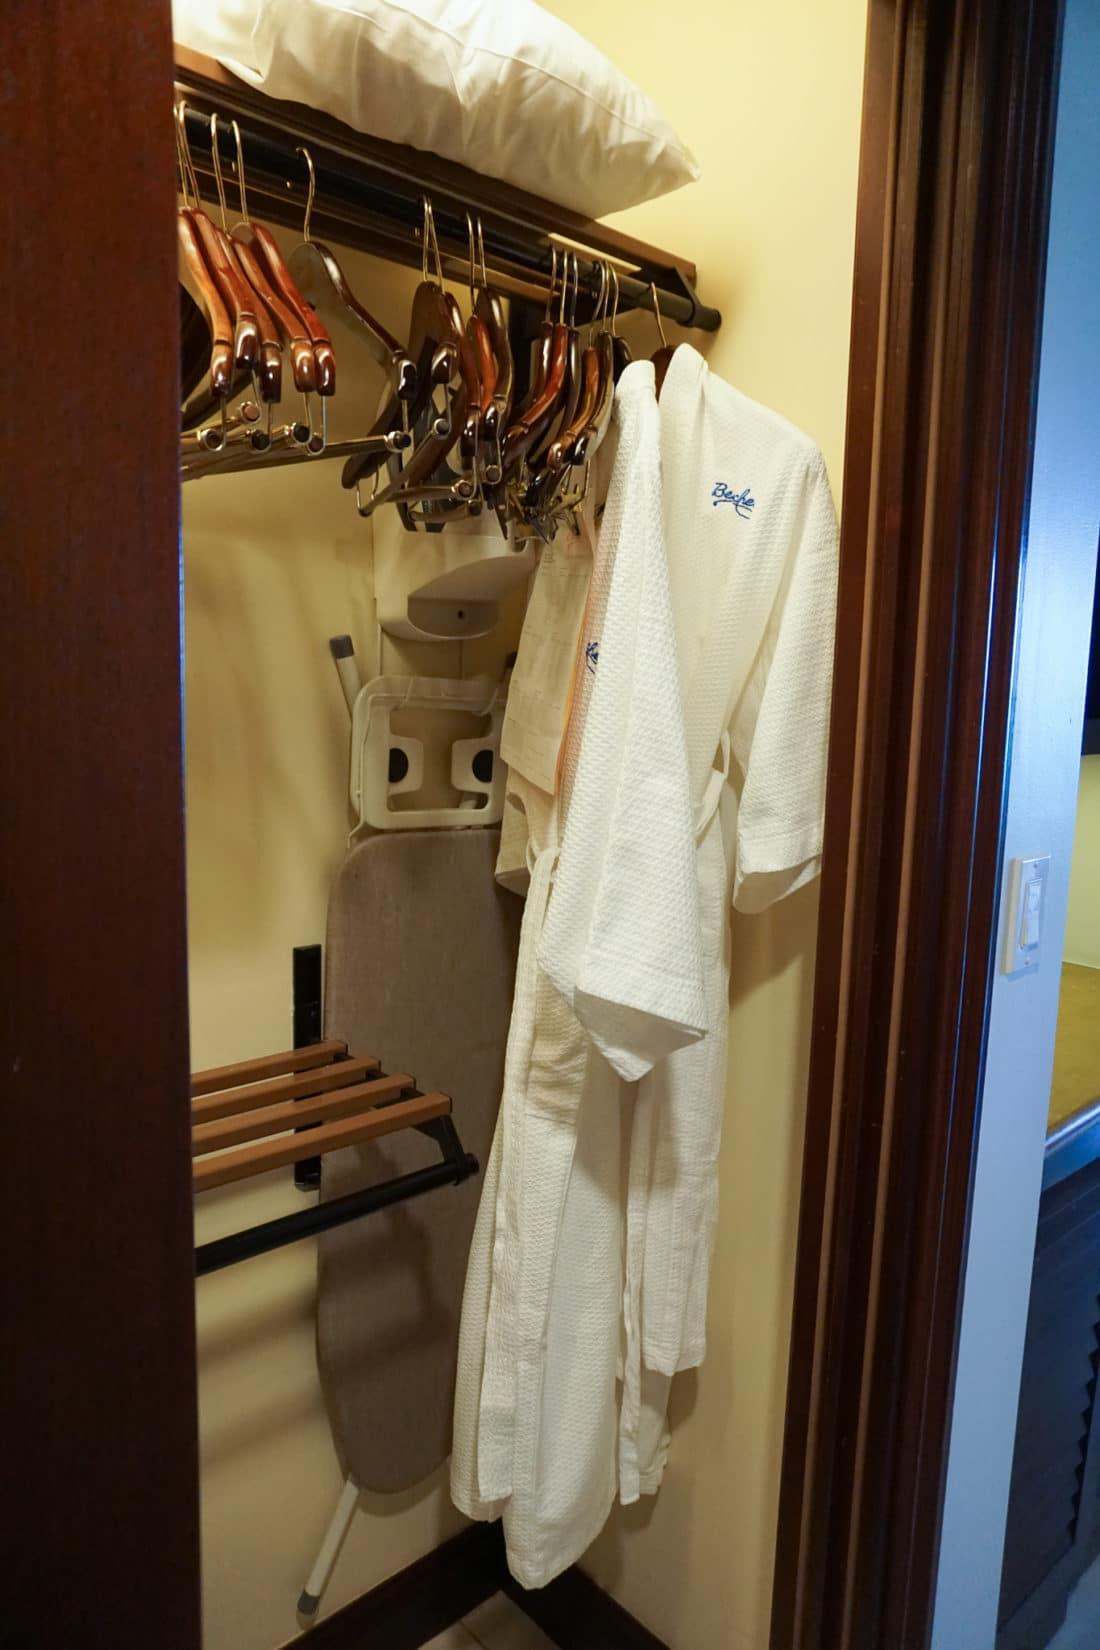 Oceanfront Family Suite Beaches Resorts in Turks and Caicos Closet with Safe Robes. Paradise does exist, and it's only a plane ride away. Take a look inside our suite in this Oceanfront Family Suite Room Tour at Beaches Resorts in Turks and Caicos.